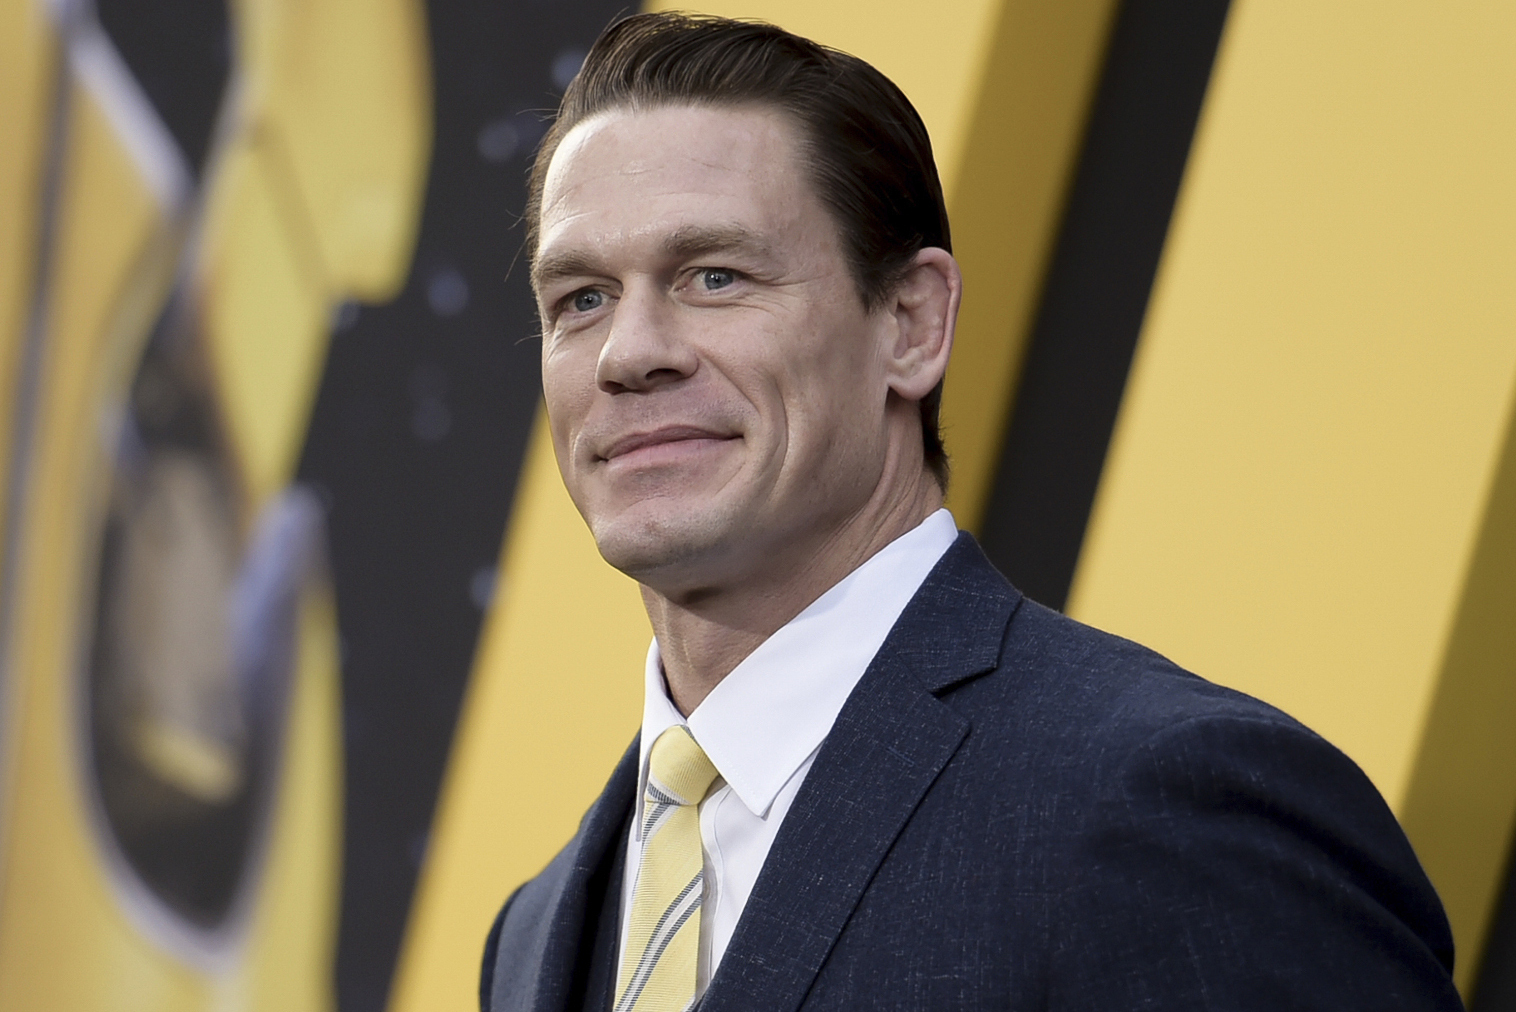 John Cena Biography, Facts & Life Story Updated 2021